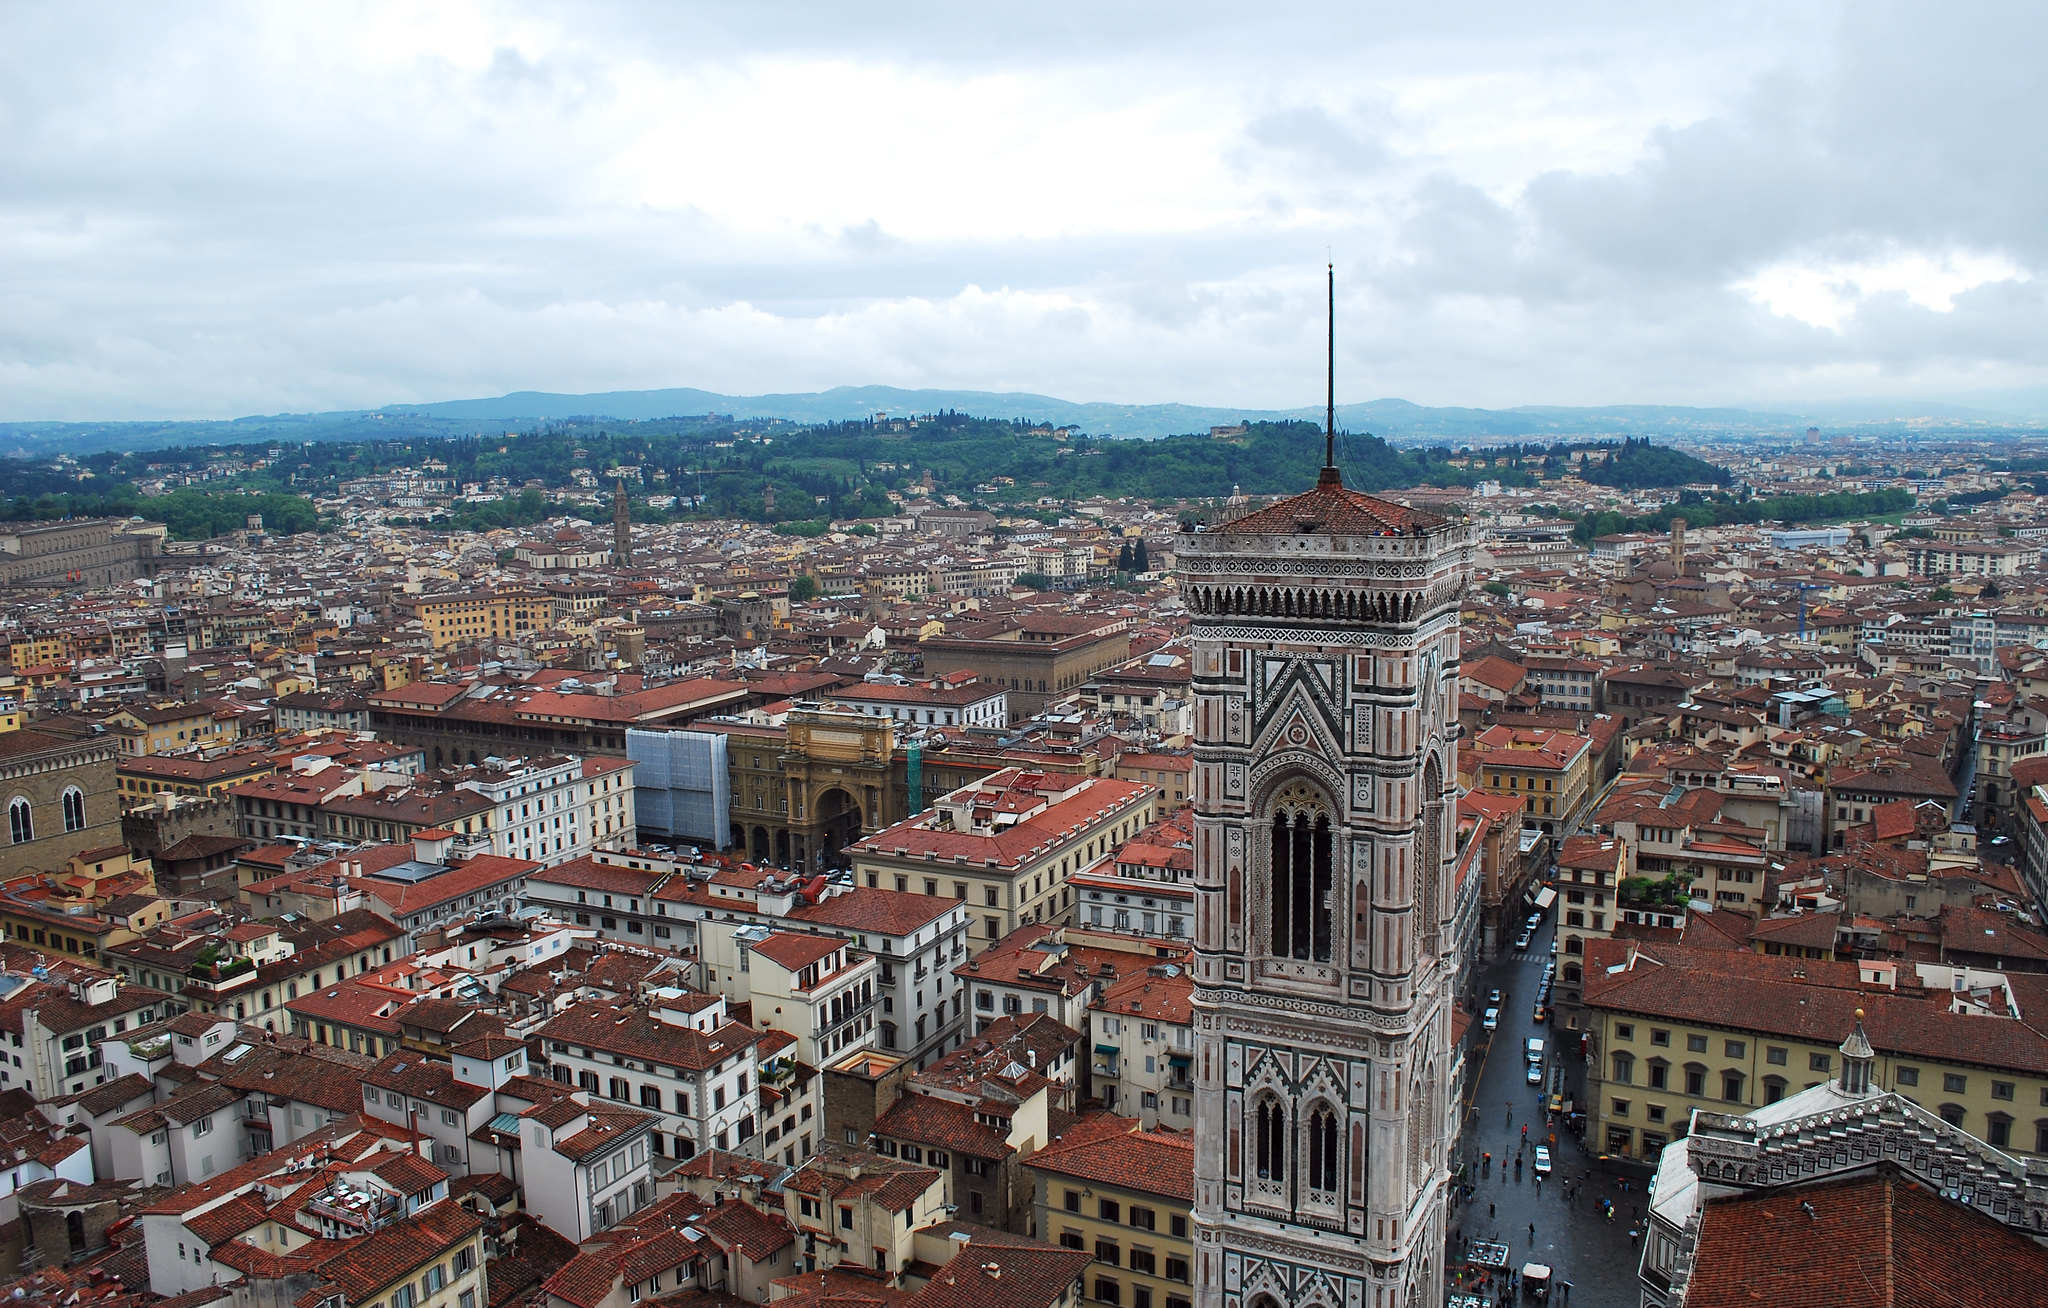 Things You Should See And Do In Florence Including Duomo - 10 things to see and do in florence